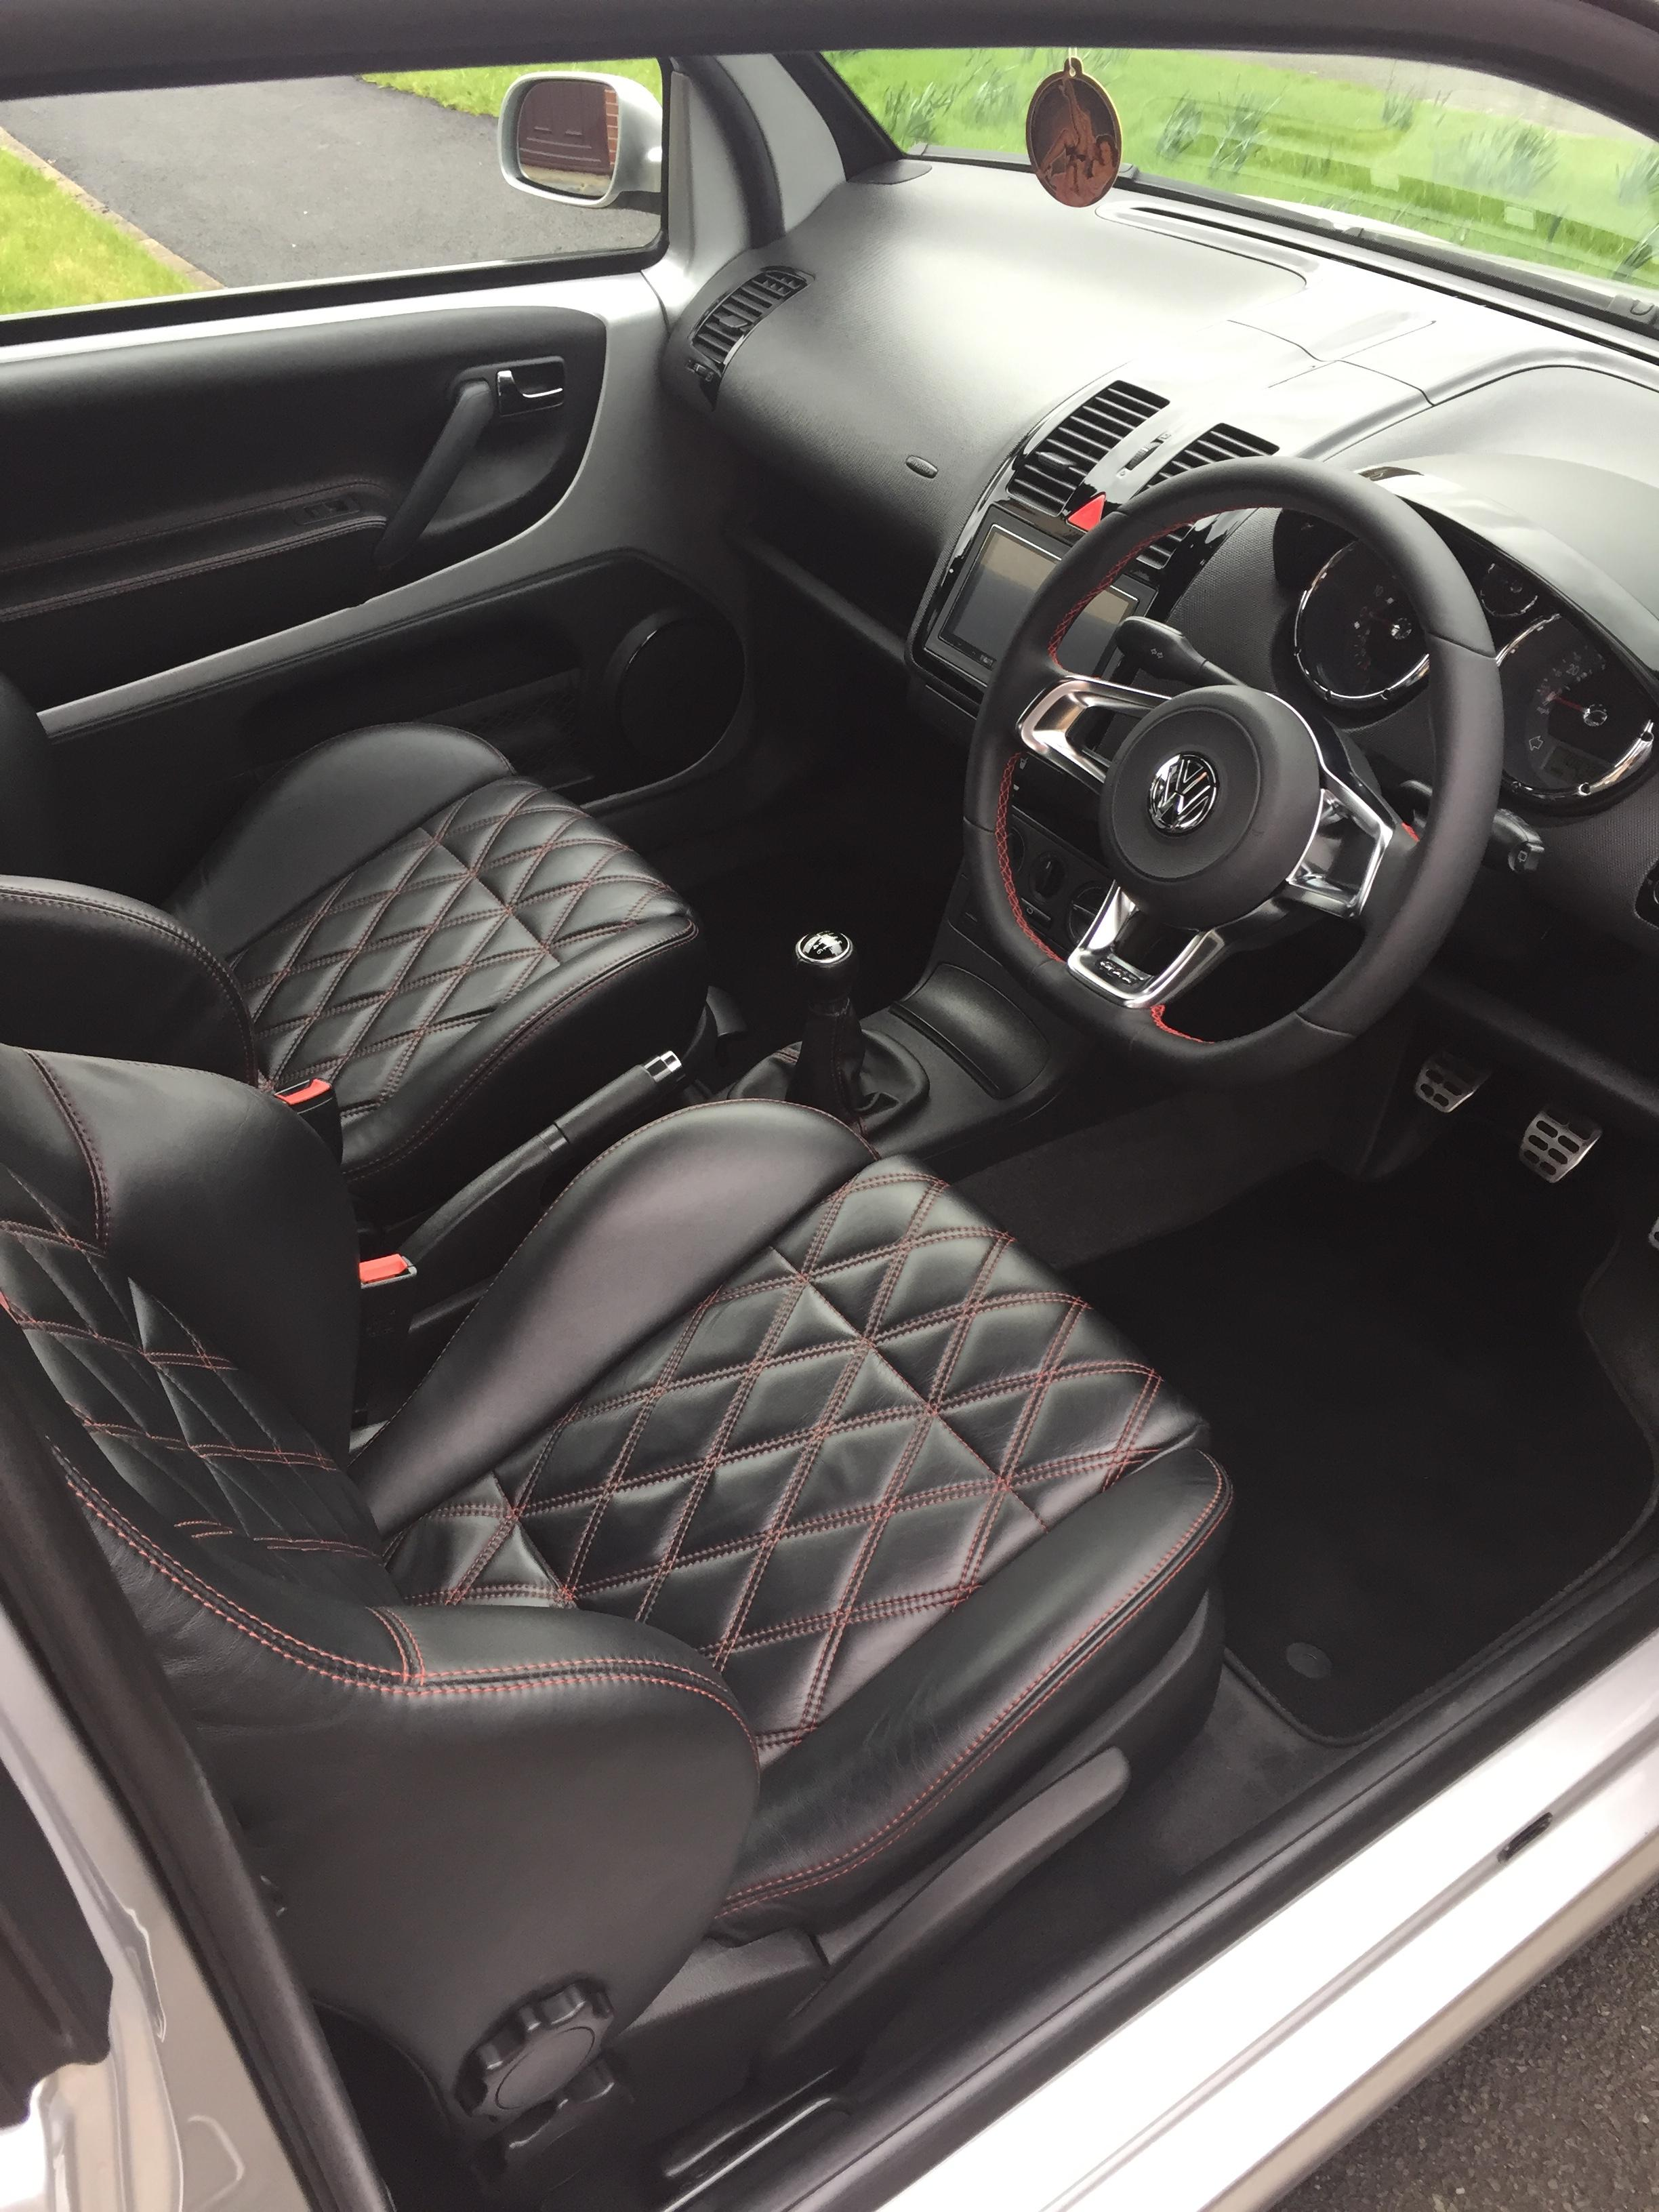 Lupo GTi re trimmed interior - Parts For Sale - Club Lupo